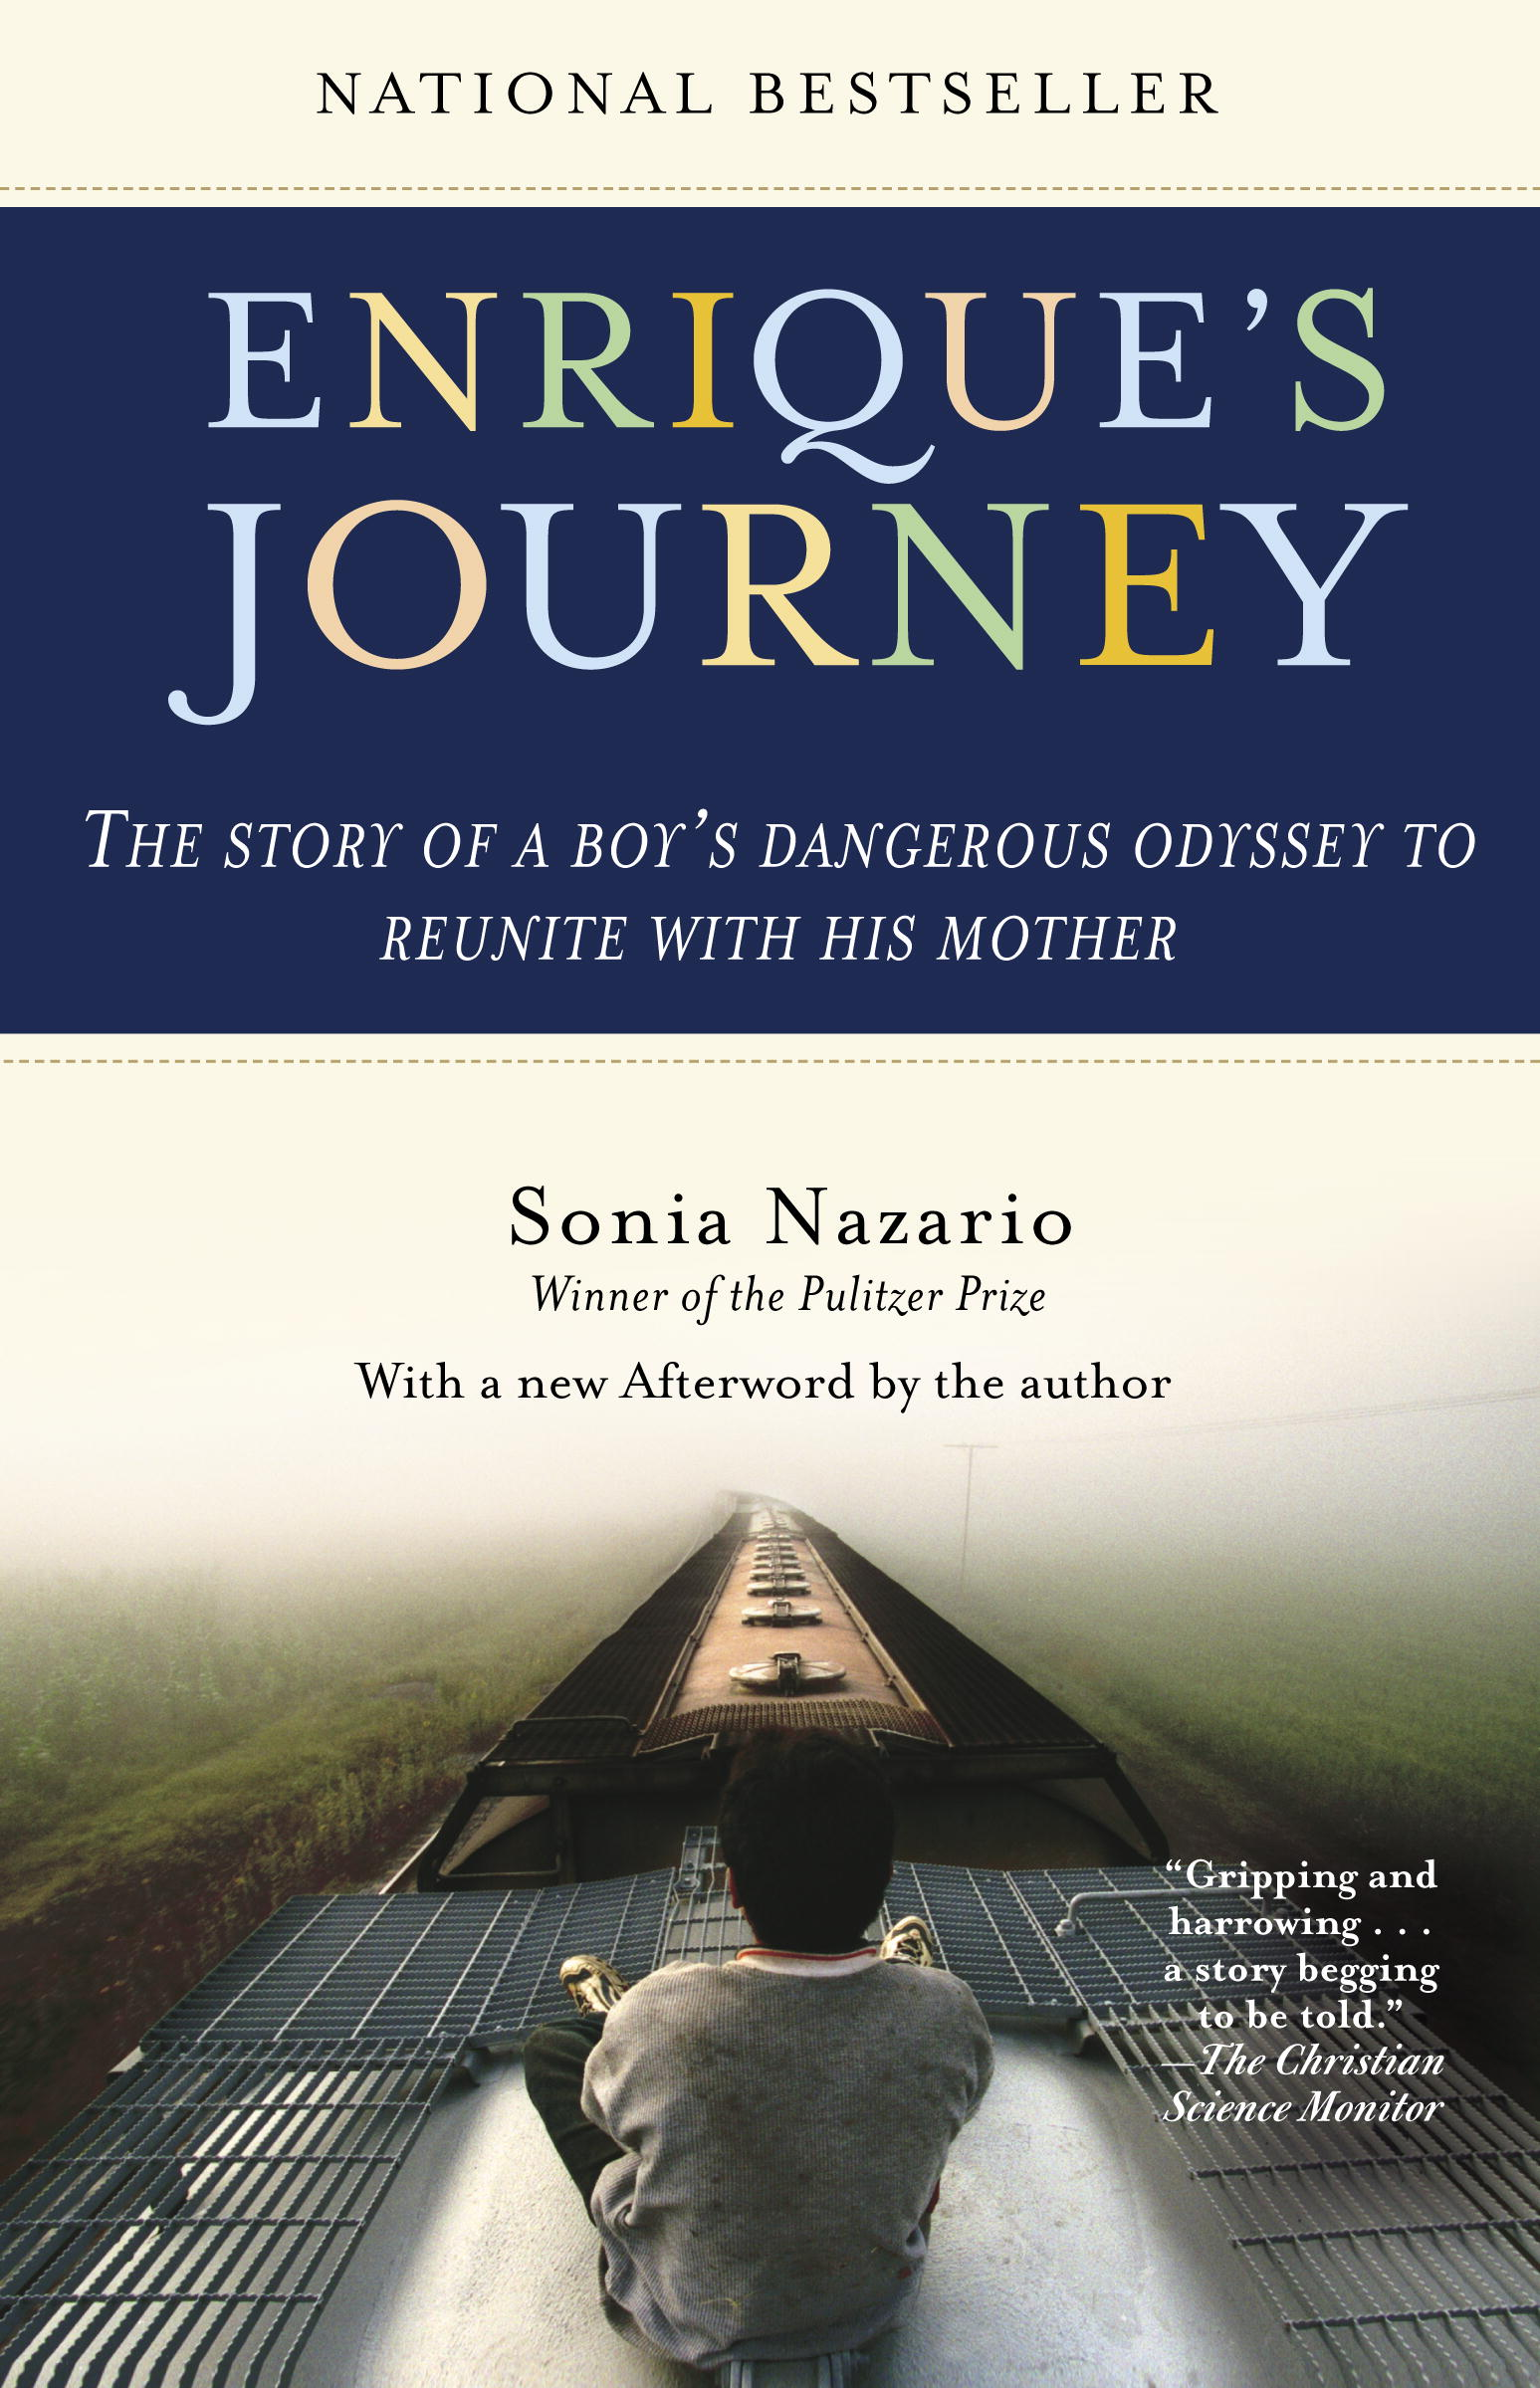 Enrique's Journey by Sonia Nazario